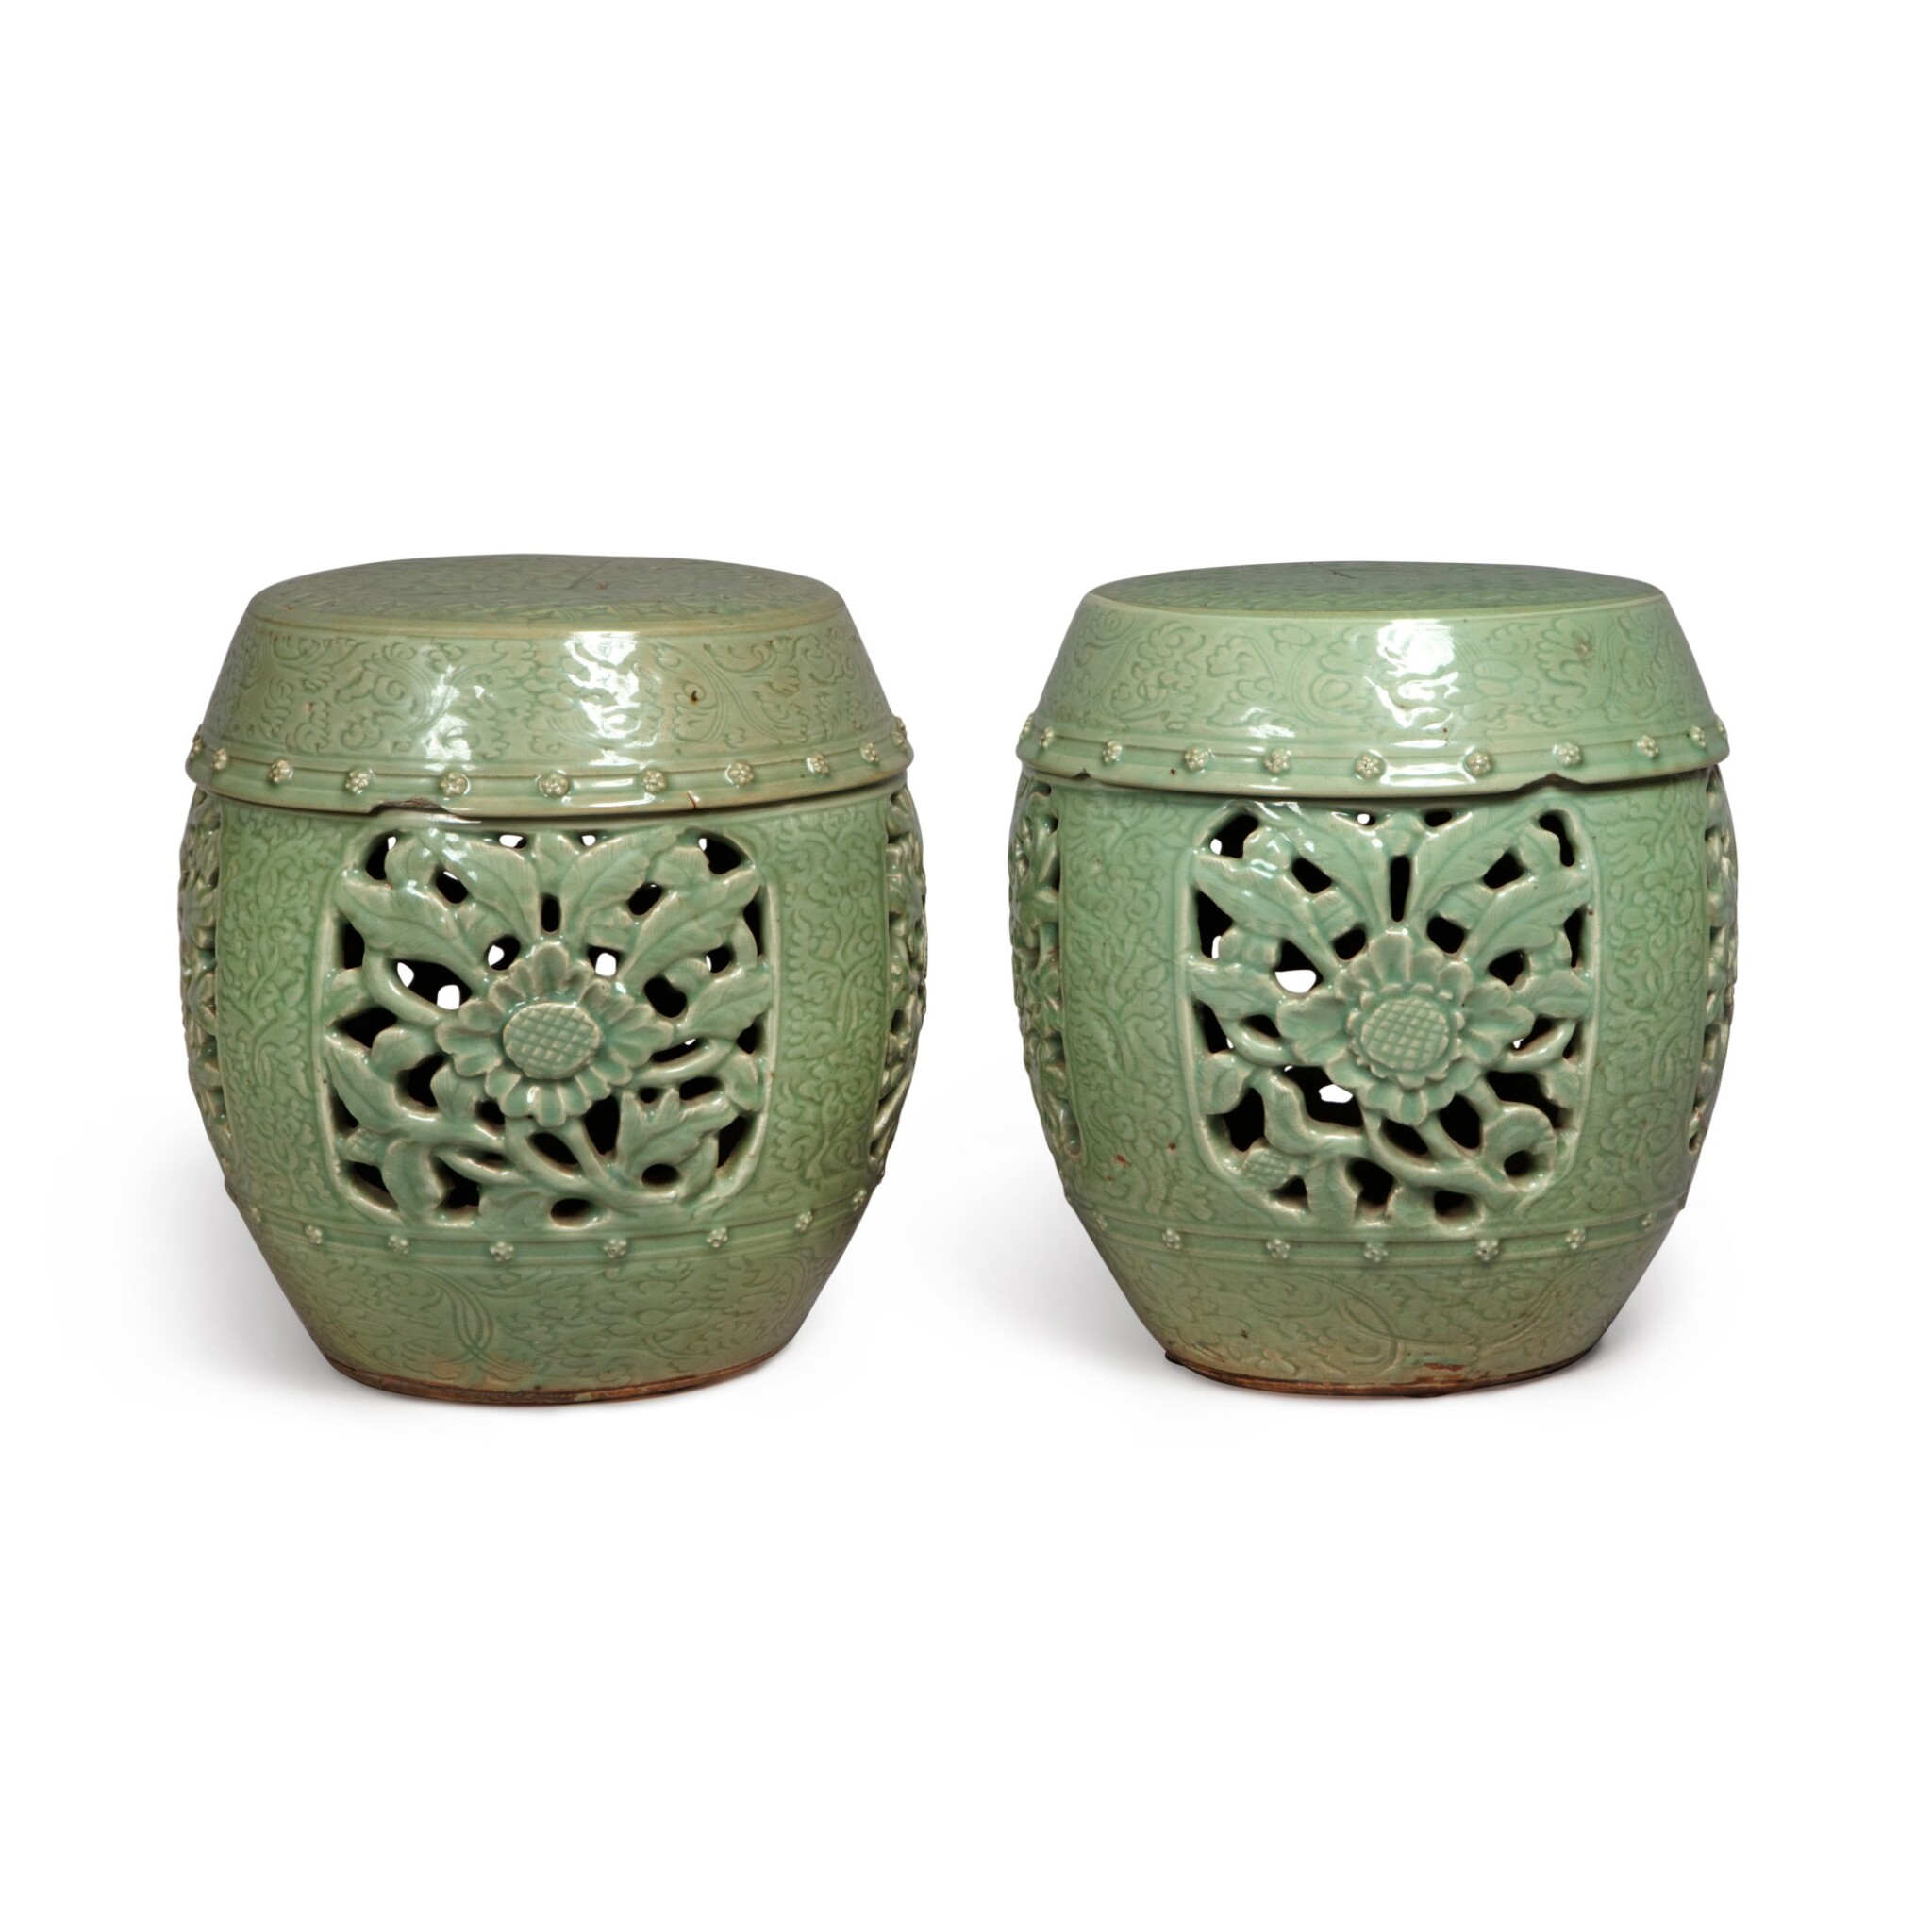 View full screen - View 1 of Lot 90. A pair of pierced and carved 'Longquan' celadon-glazed garden seats, Ming dynasty | 明 龍泉窰青釉開光鏤空花卉紋坐墩一對.